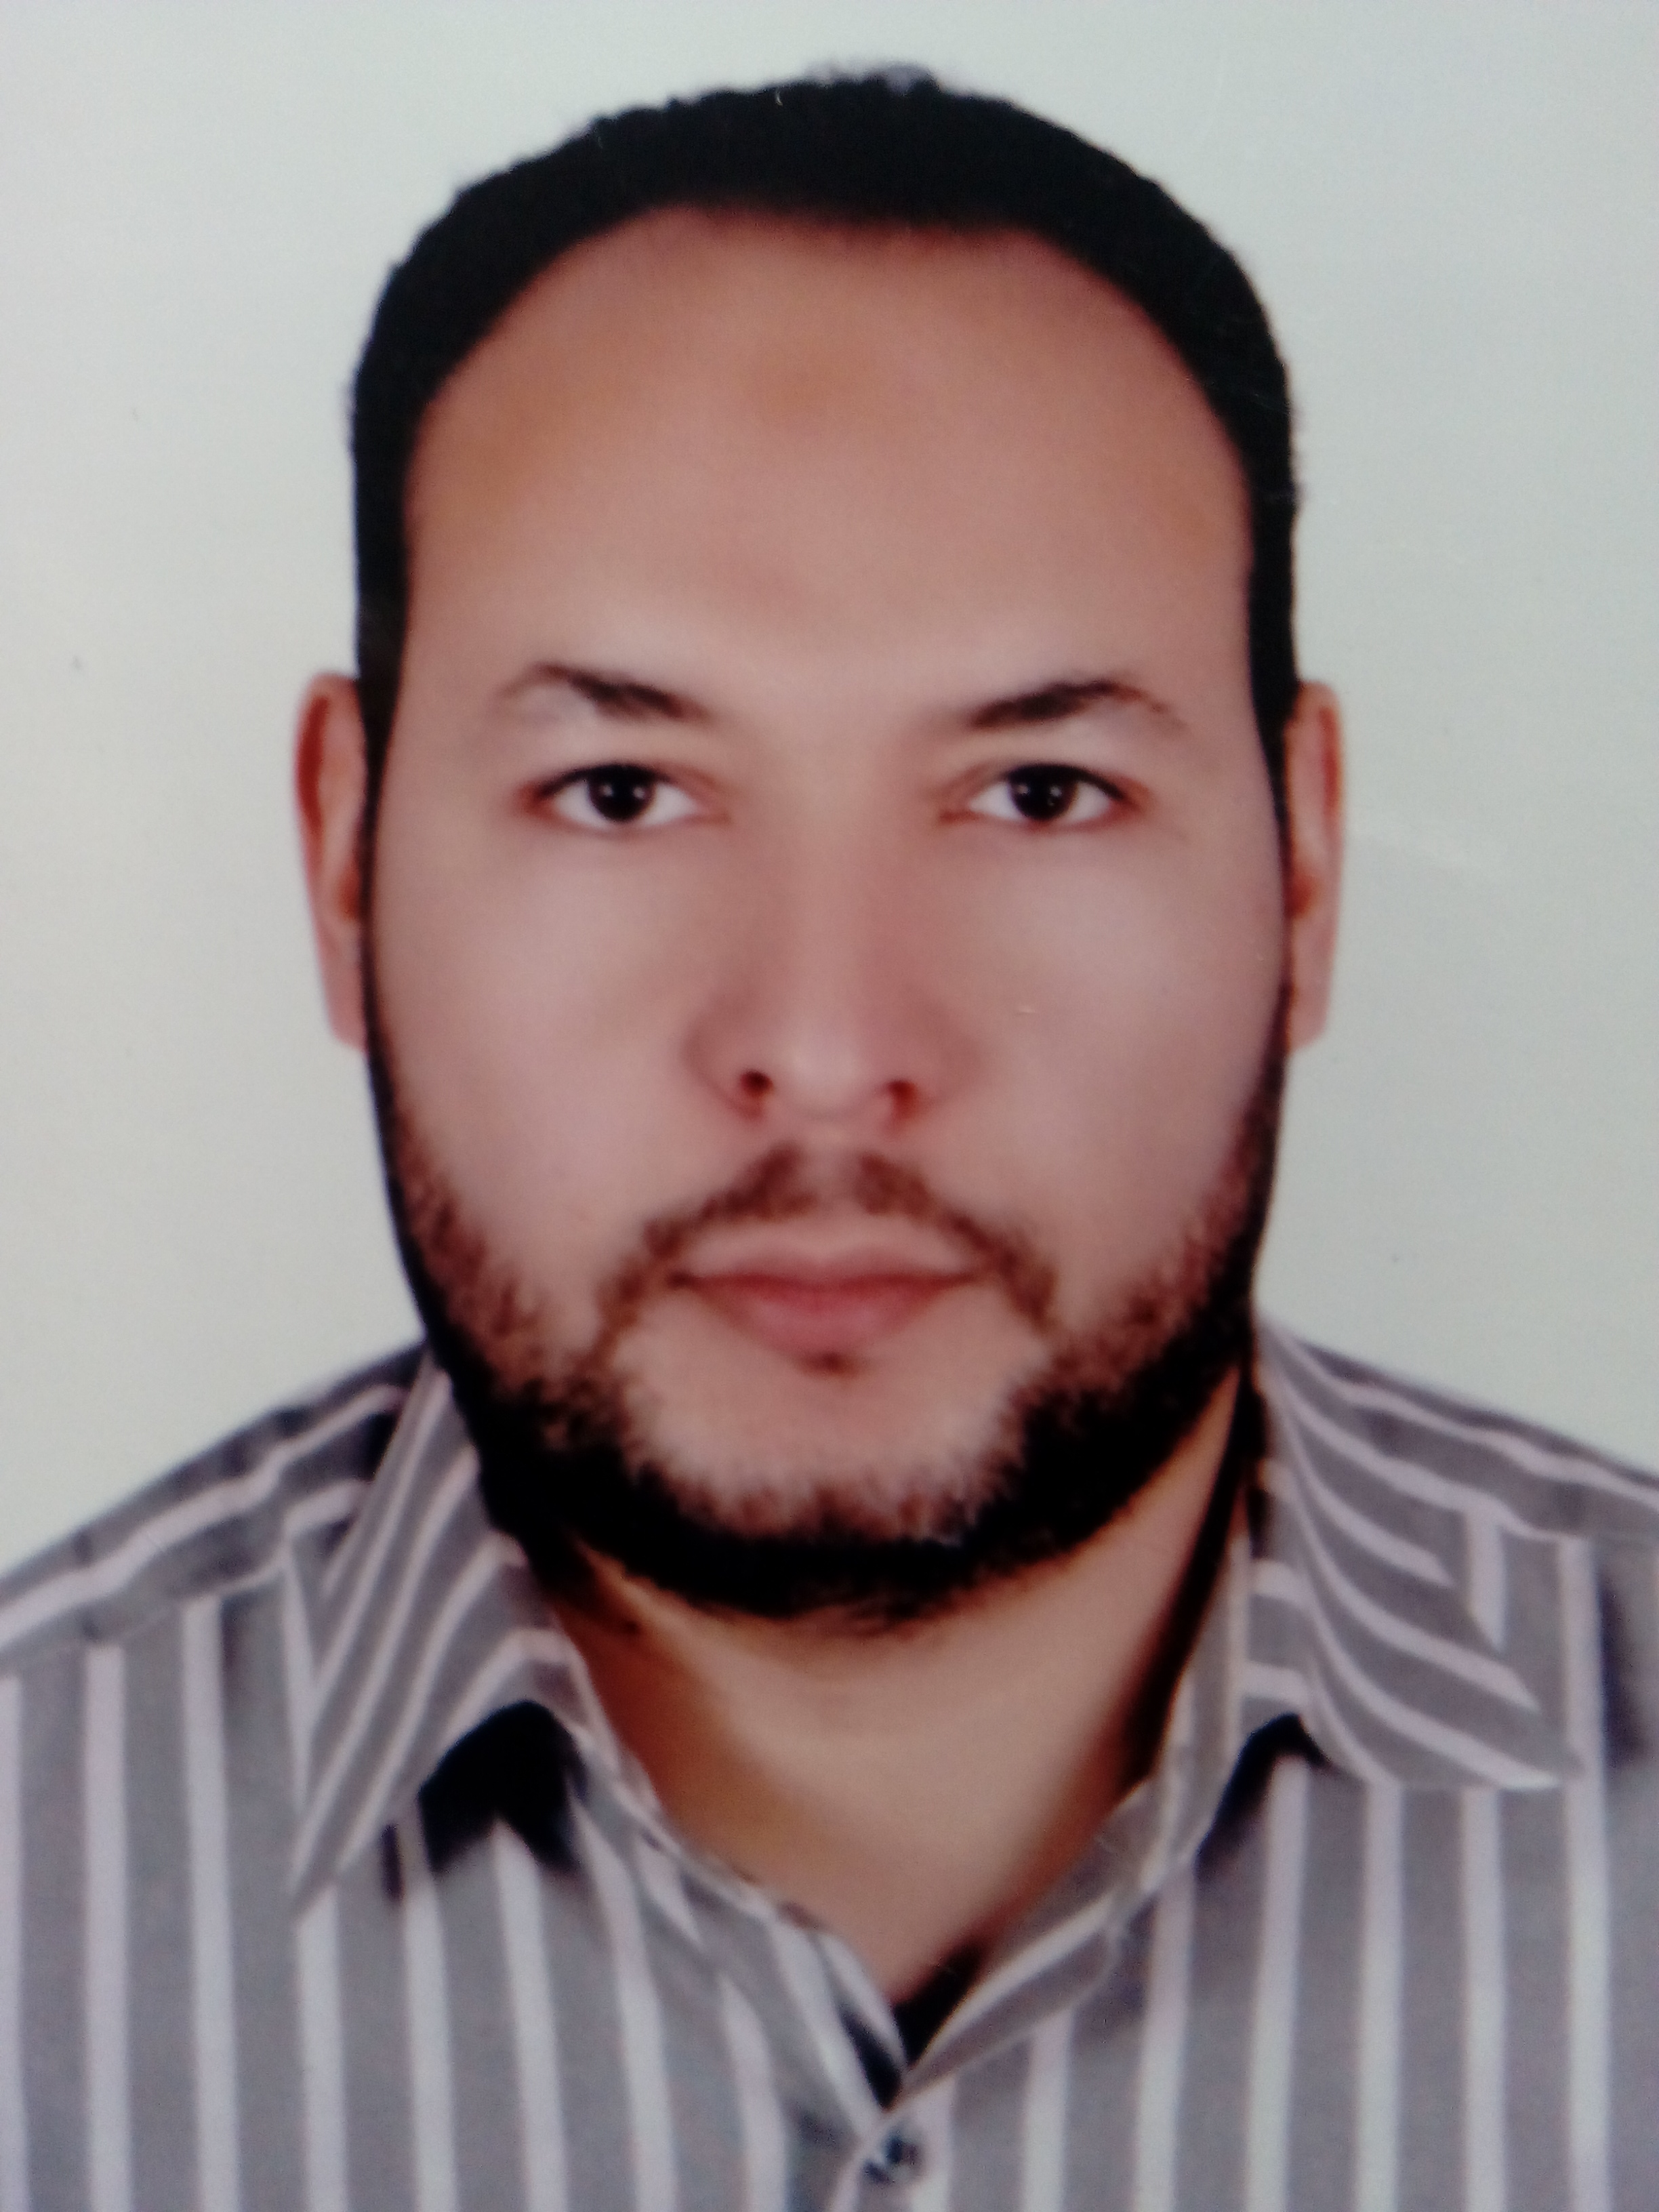 Mohamed Saeed Refaee Saleh